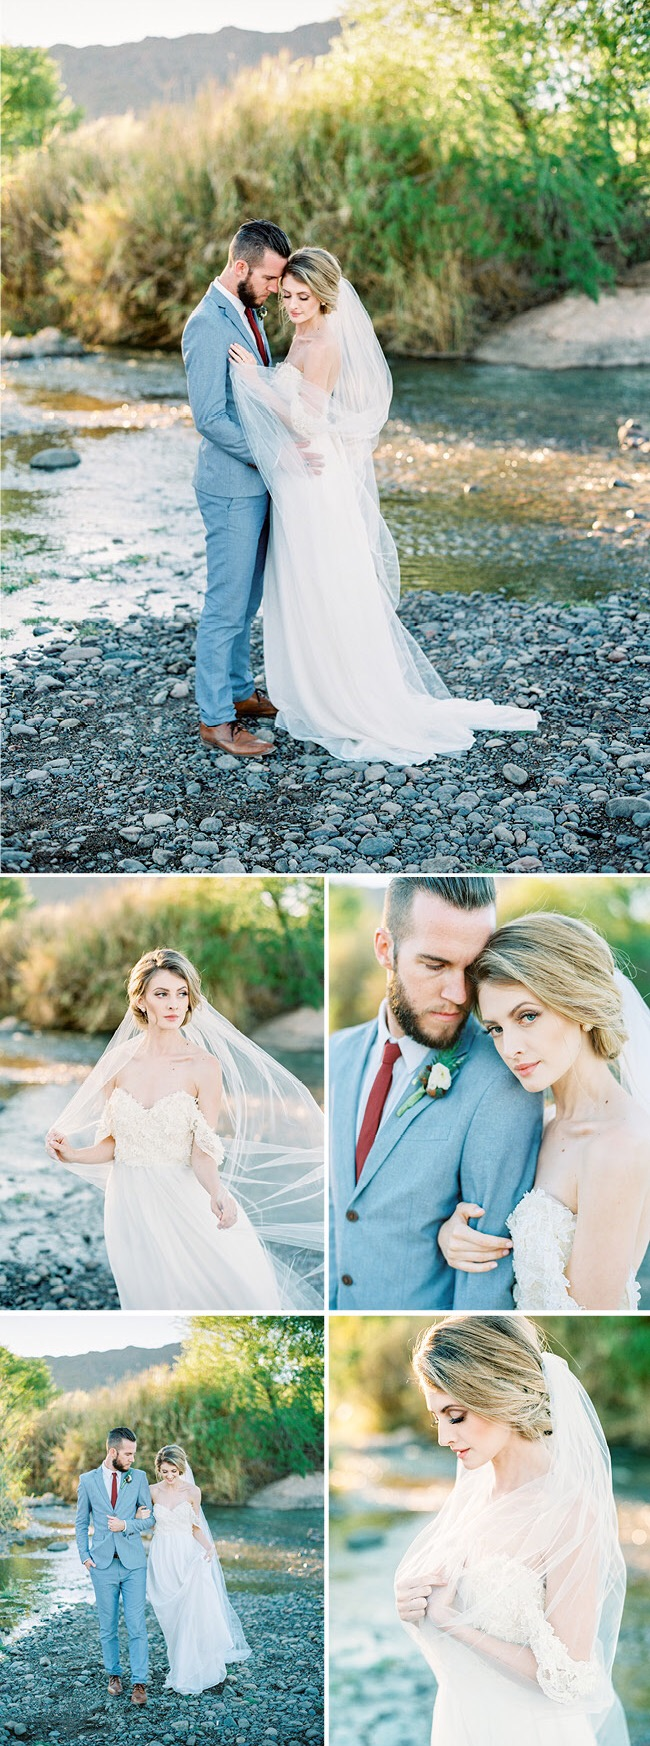 Bohemian wedding gowns by Lauren Elaine Bridal featured in Arizona Weddings Magazine